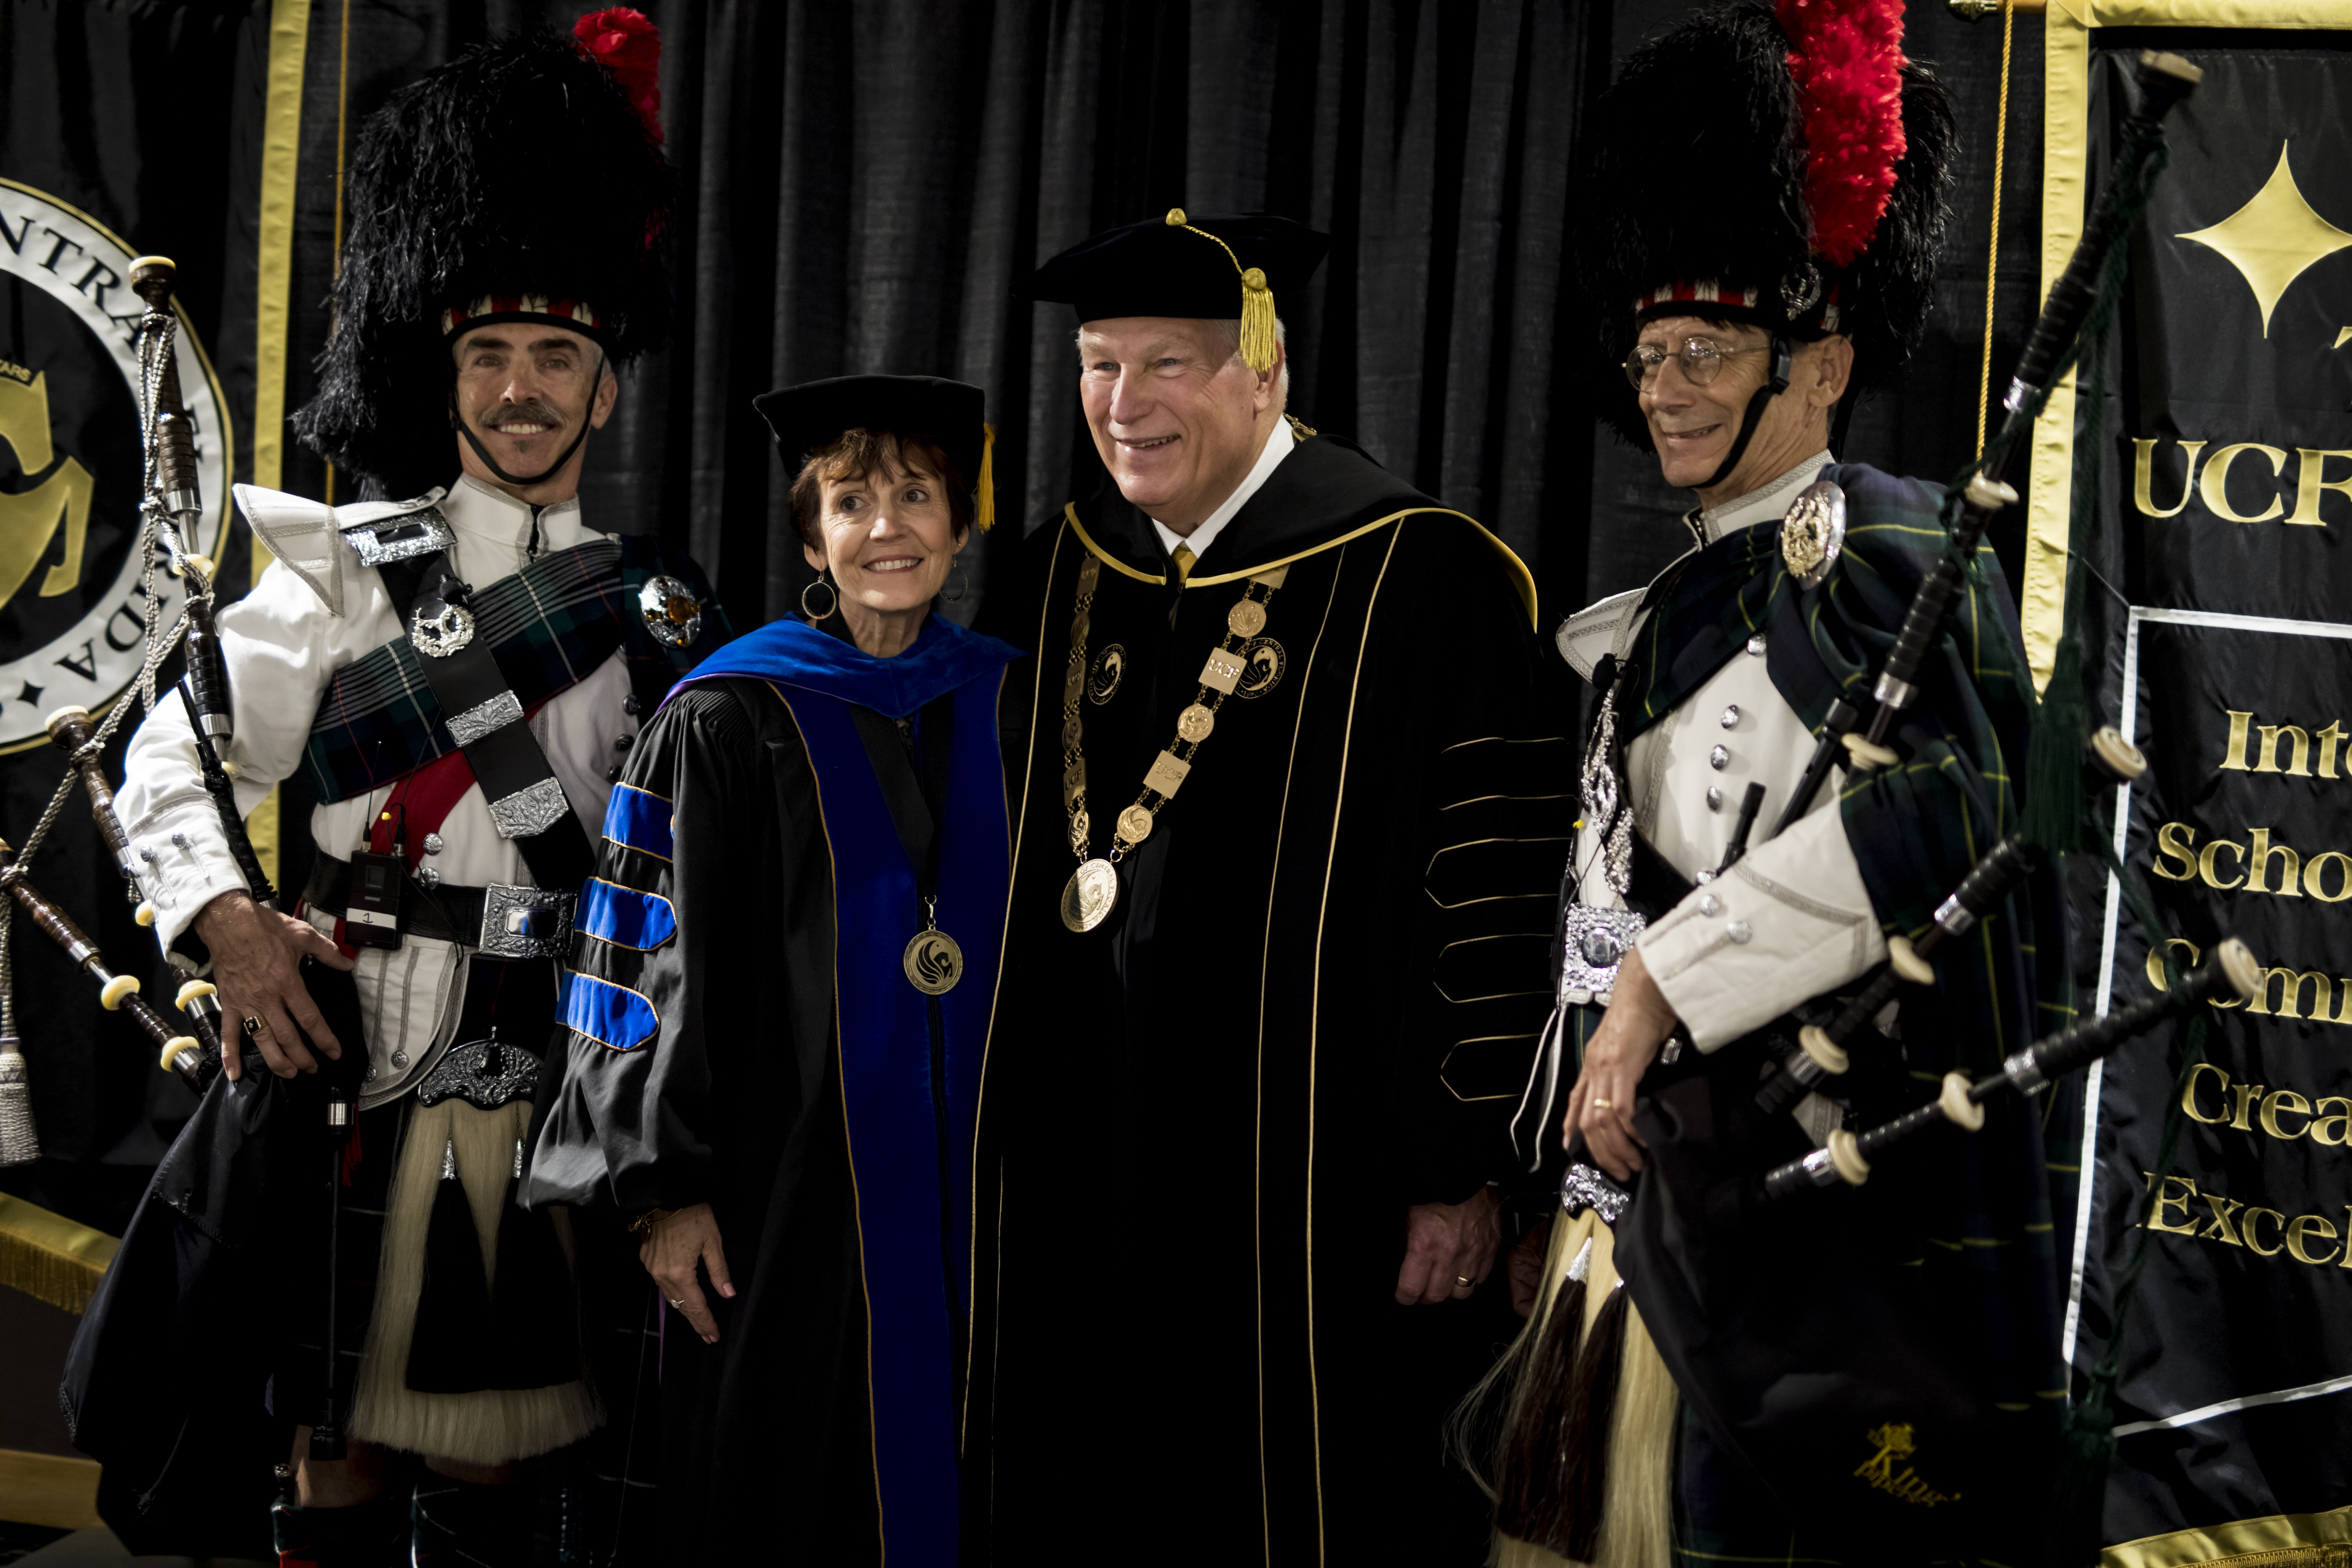 John C. Hitt poses beside a woman as two bagpipe players stand on either side of them for a photo.